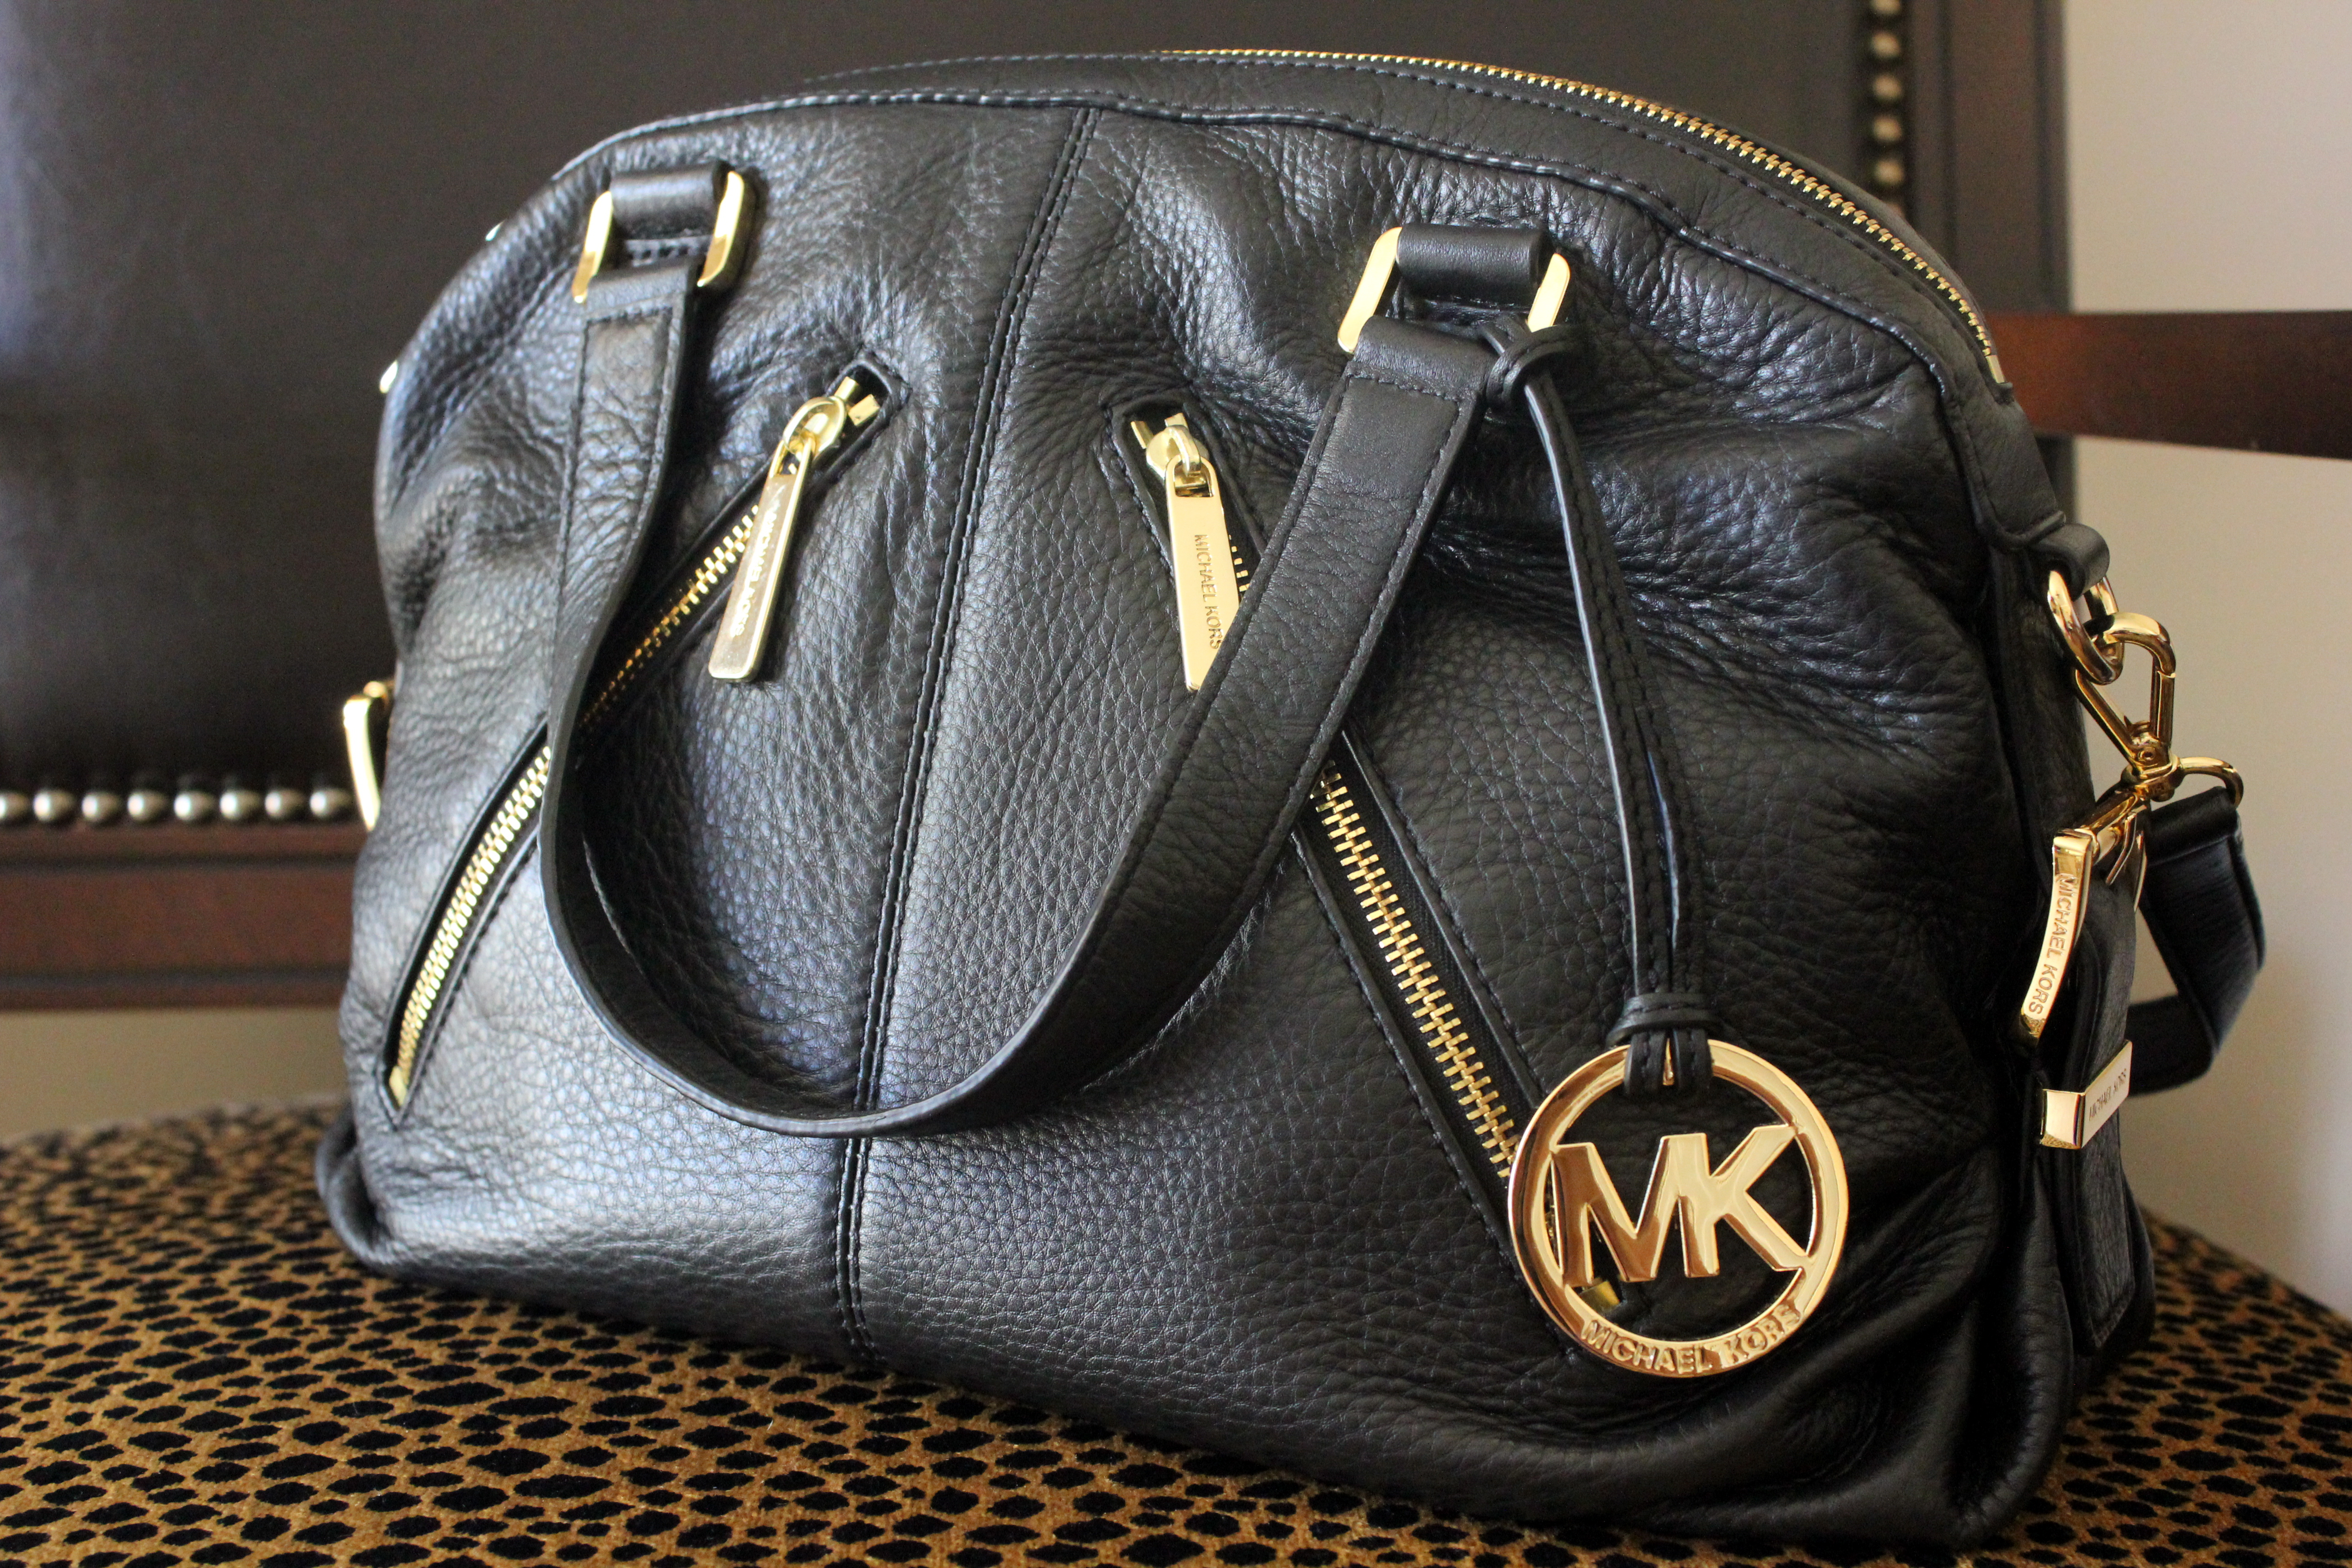 Get the best deals on michael kors handbags at tj maxx and save up to 70% off at Poshmark now! Whatever you're shopping for, we've got it.